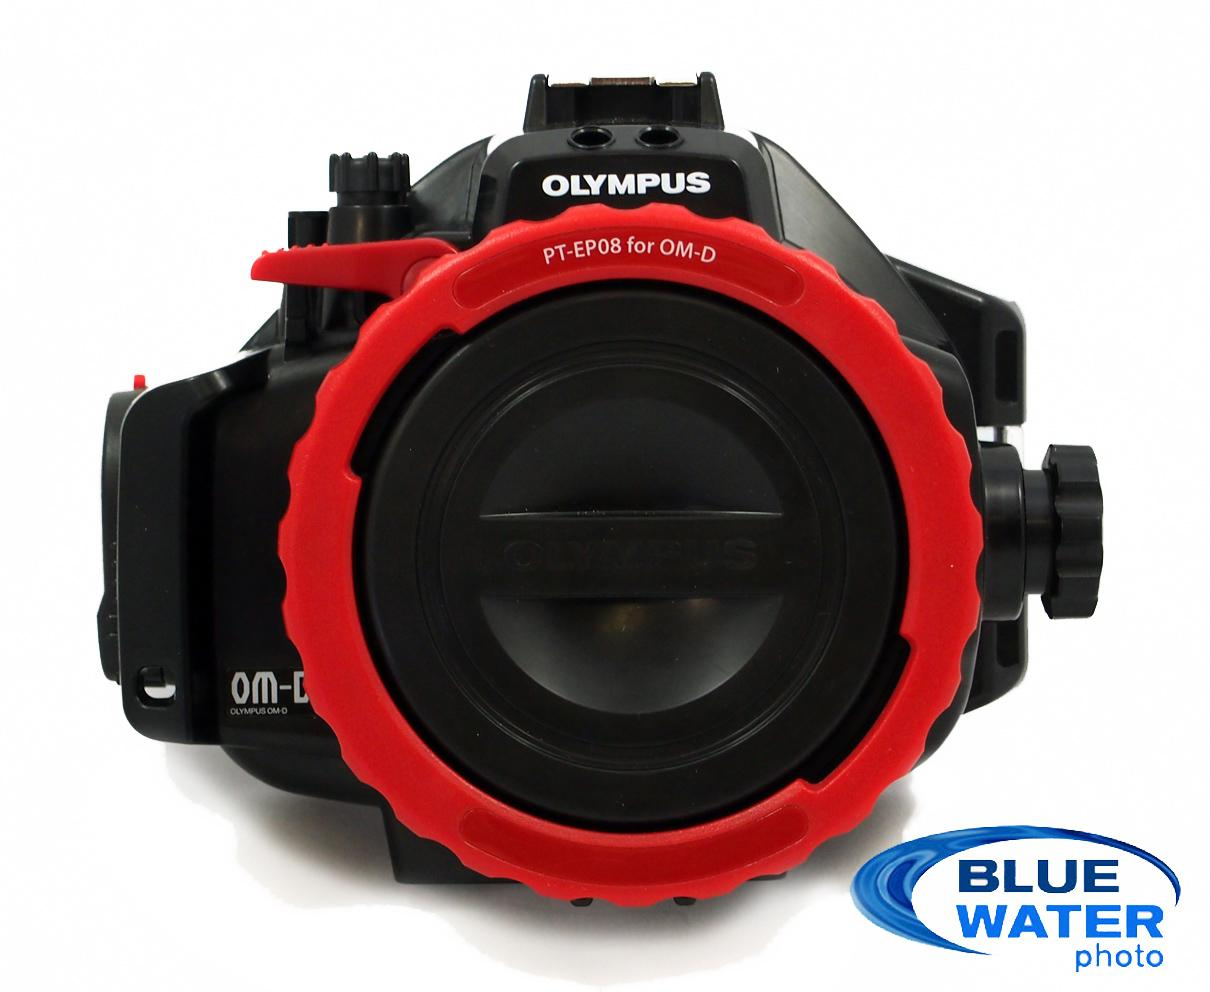 Olympus Pt Ep08 Housing For Om D E M5 Camera Bluewater Photo Video Mark Ii Kit Ed 12 40mm F 28 Pro